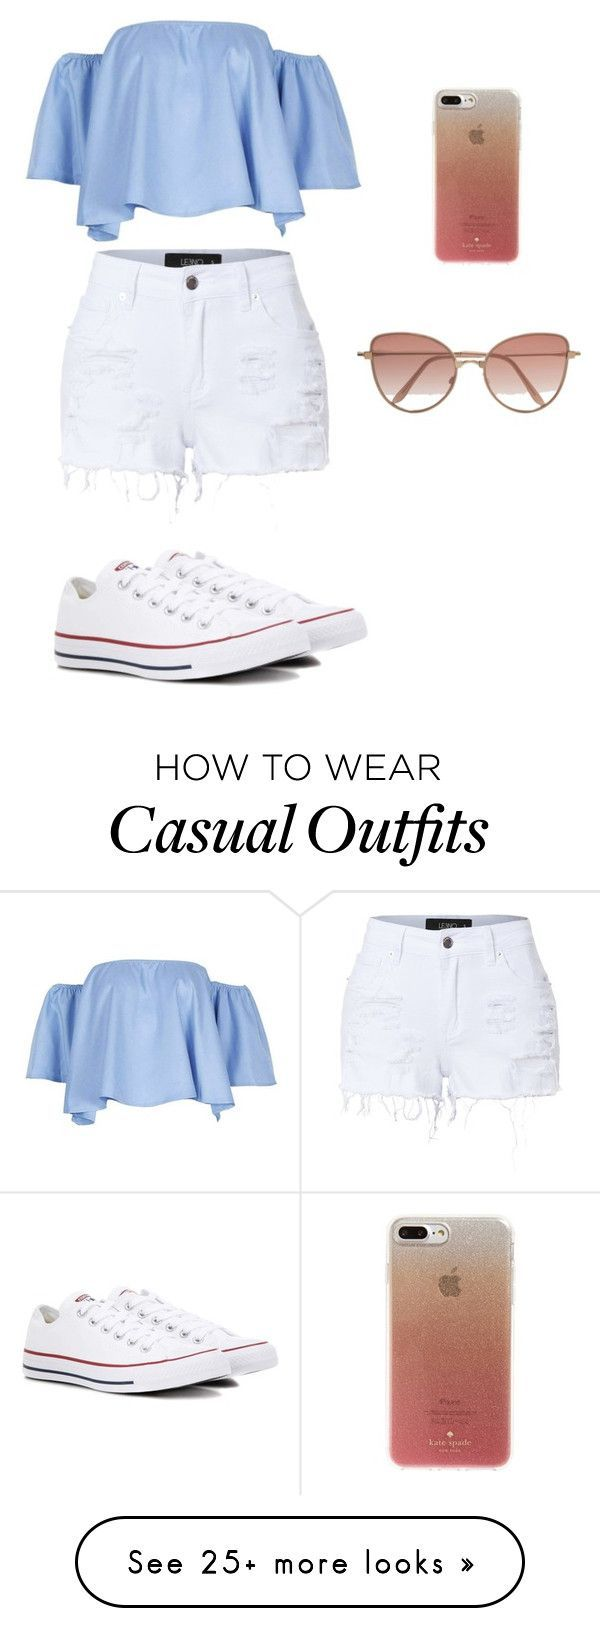 """Summer time casual"" by caitlyn-hogan on Polyvore featuring LE3NO, Converse, Kate Spade and Cutler and Gross"